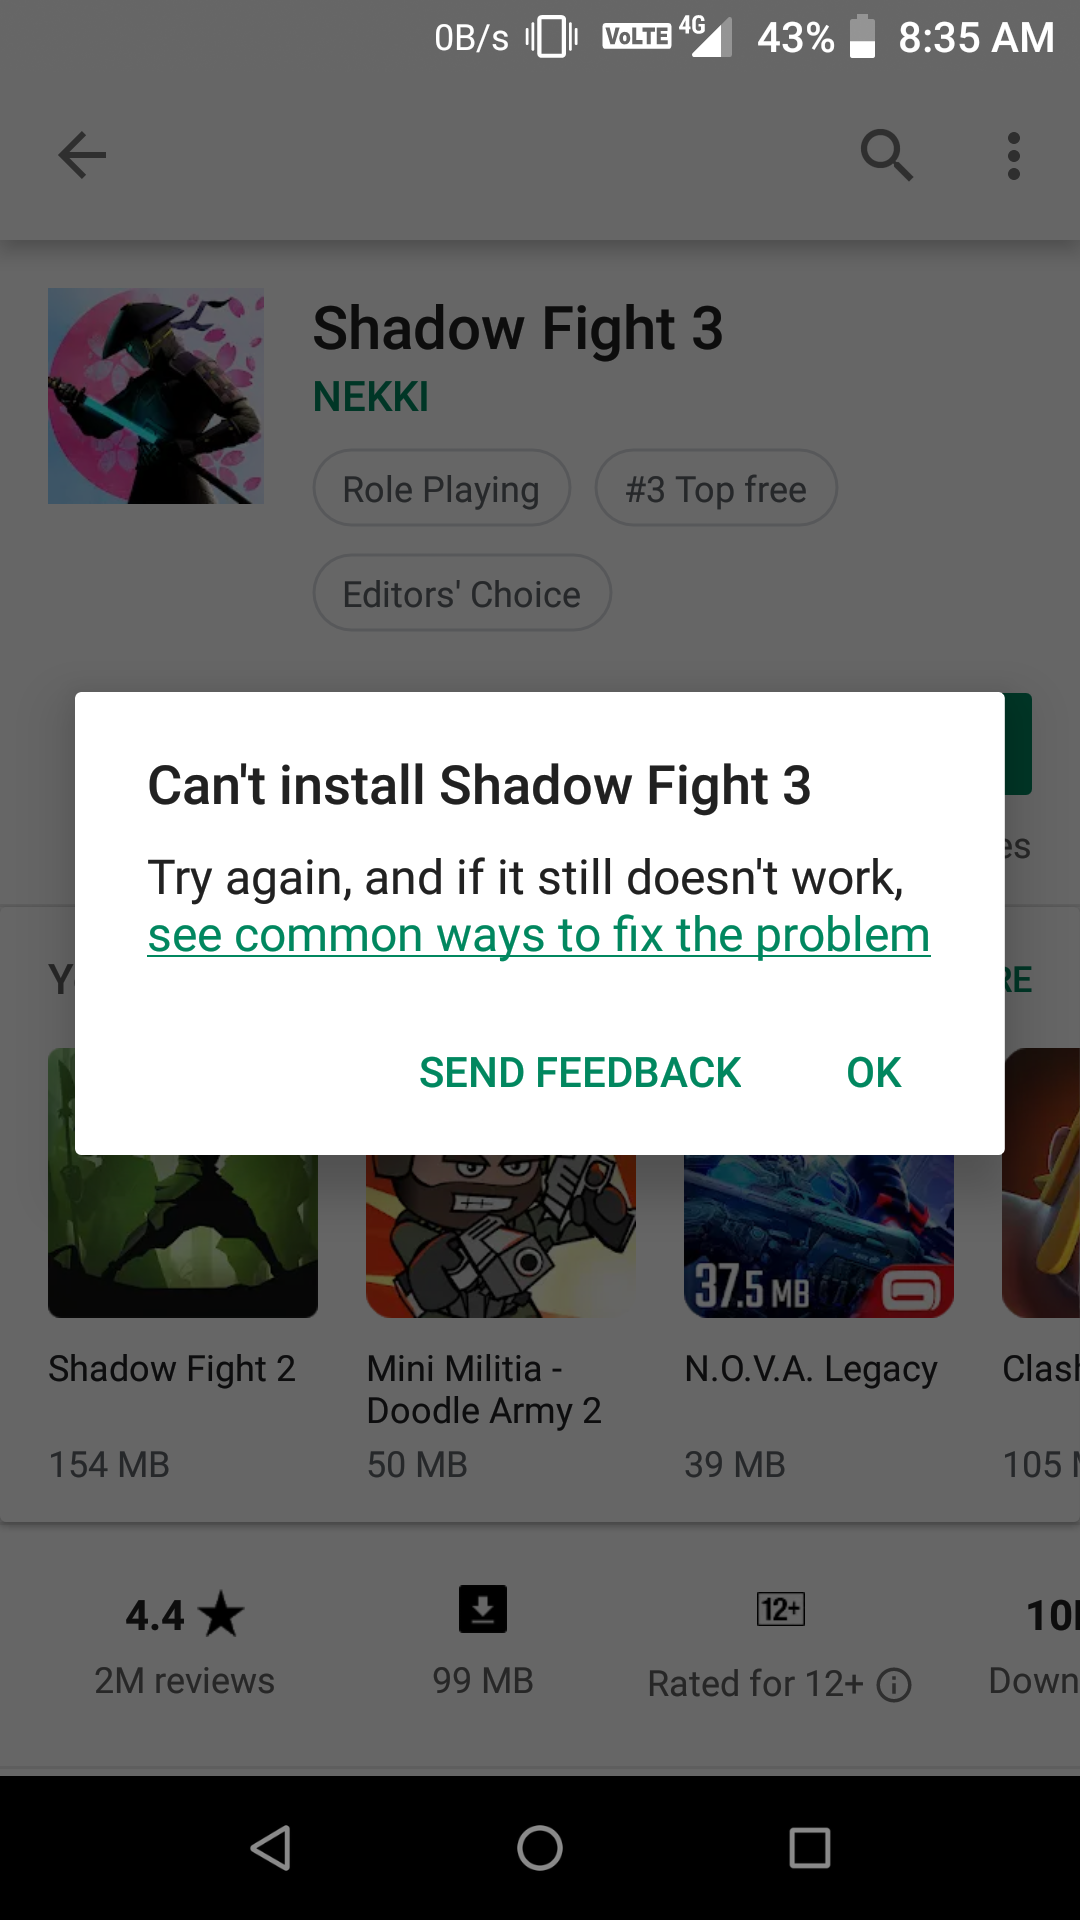 Can't install shadow fight 3 - Google Play Help